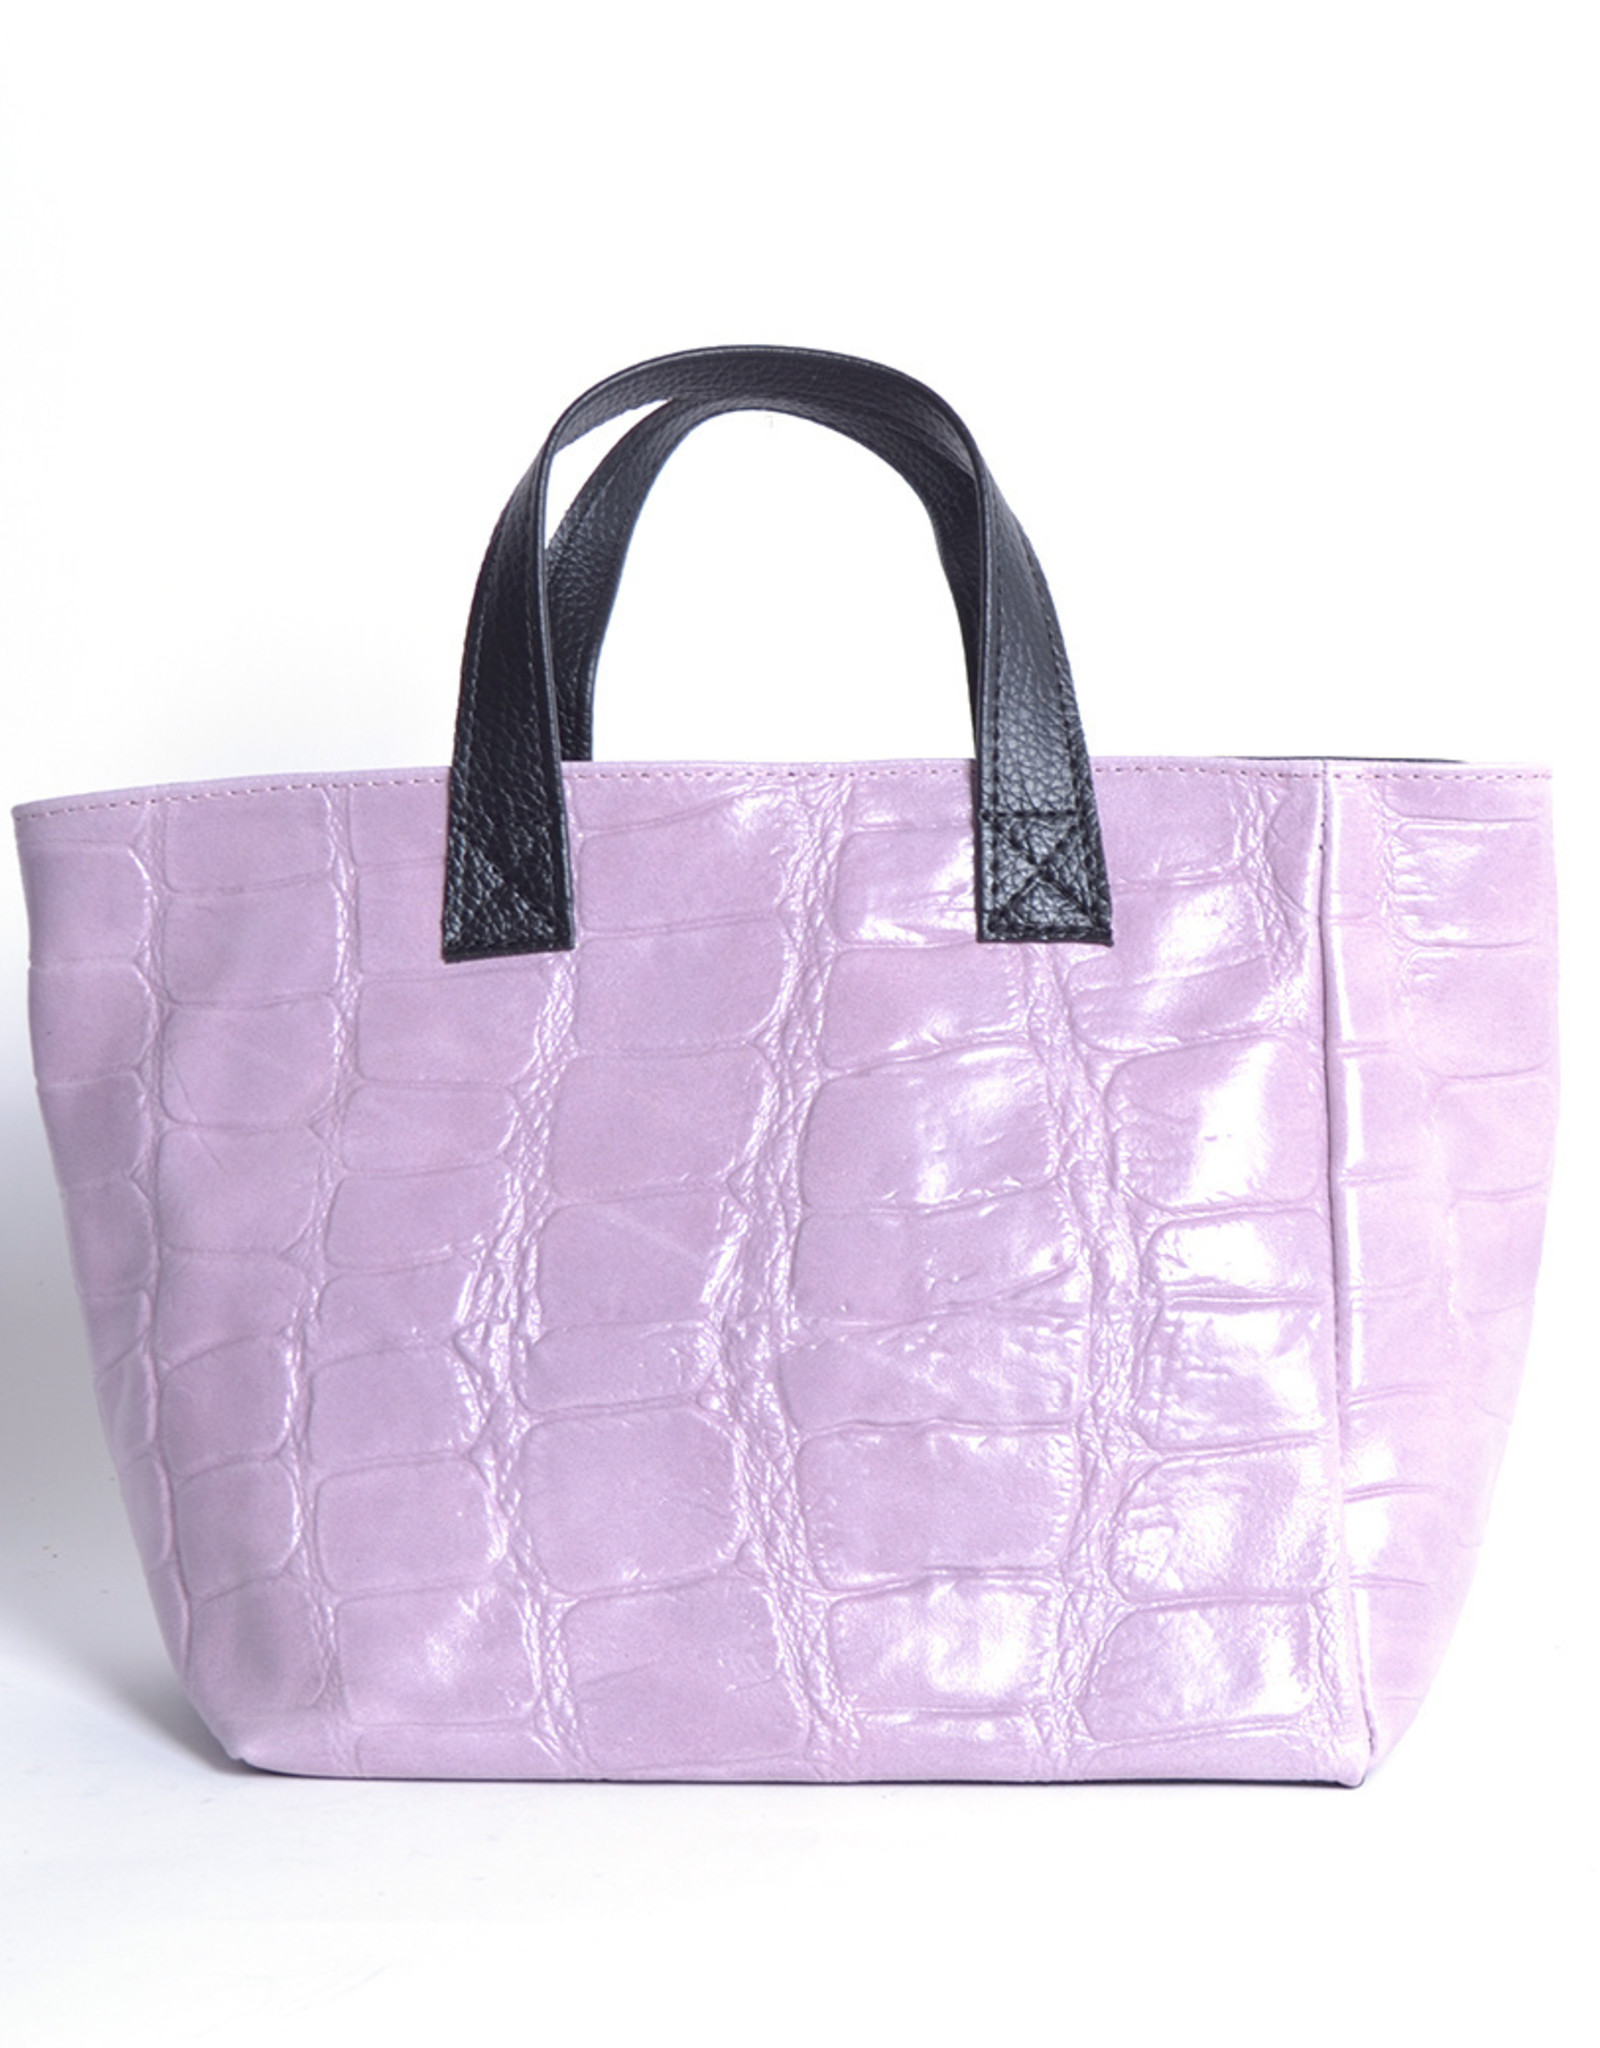 Croco leather bag with handles and long shoulderbelt.